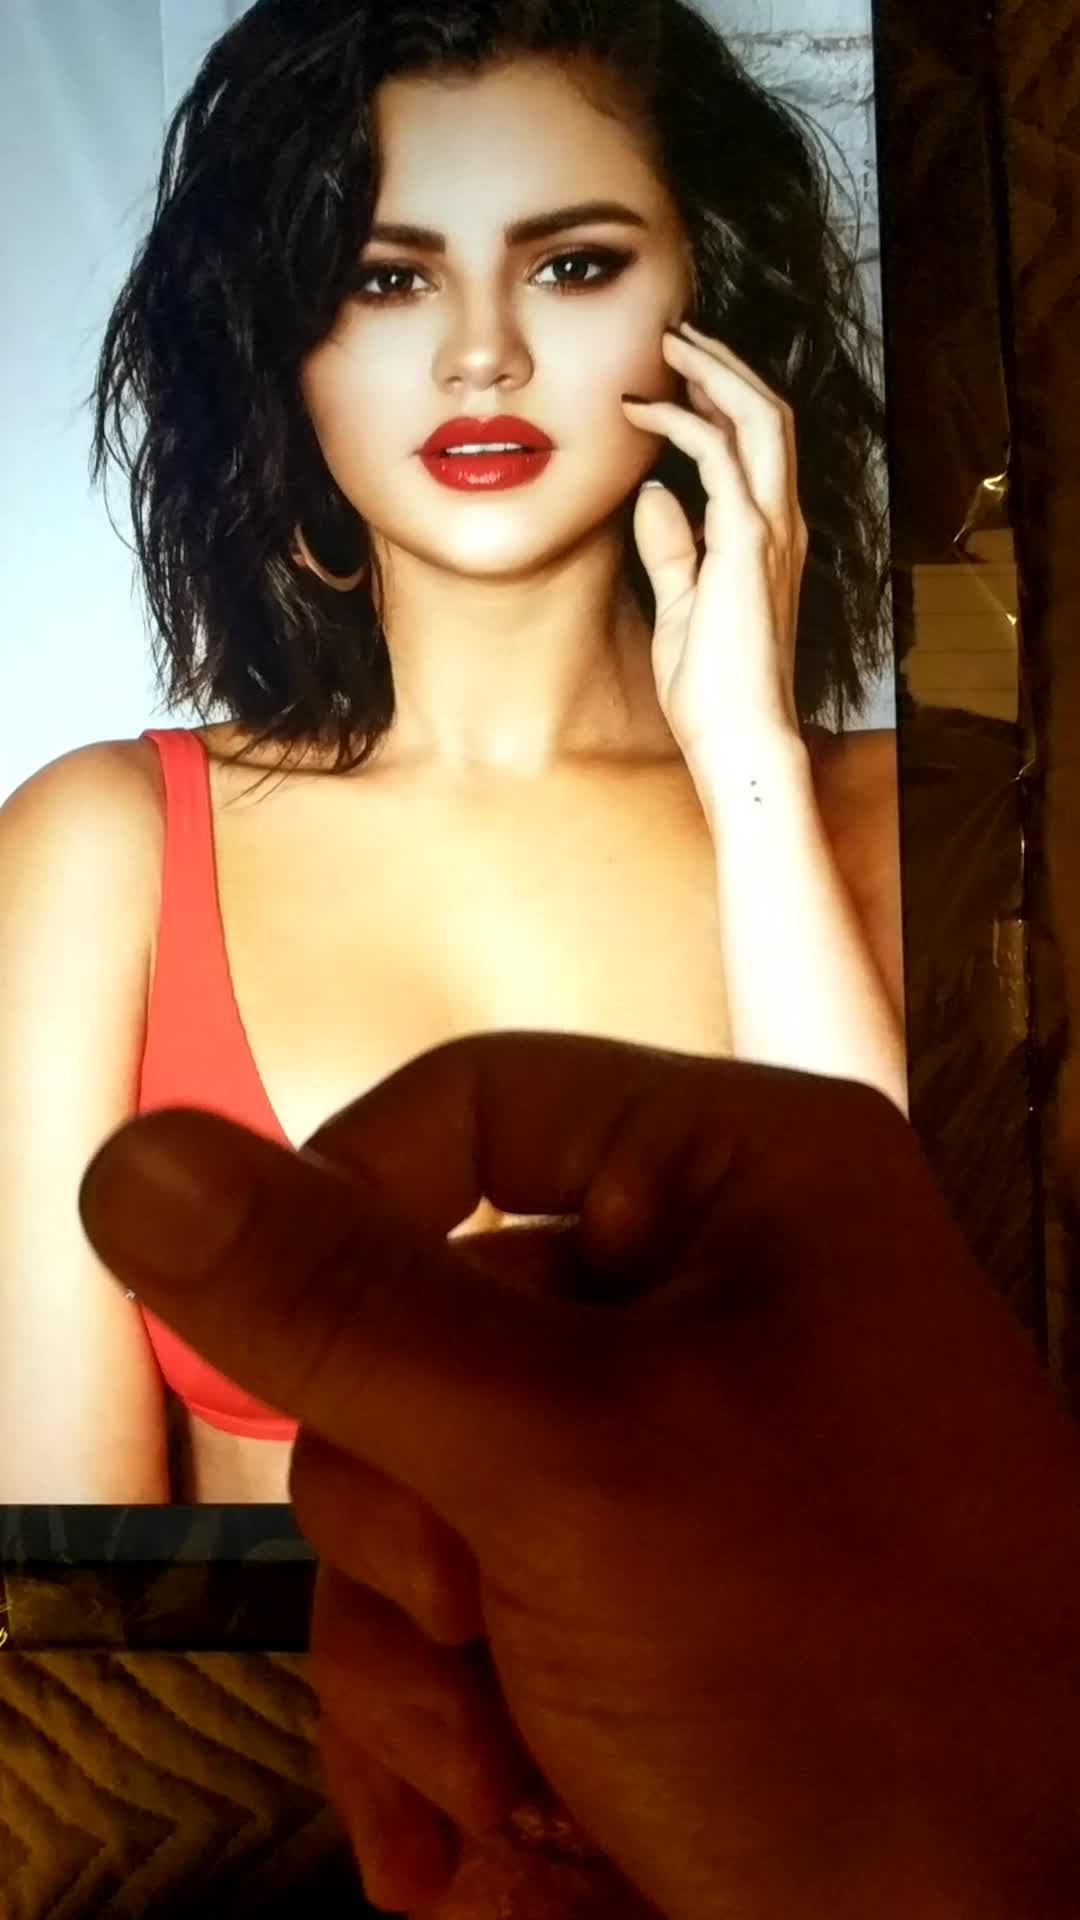 Thick load for Selena Gomez